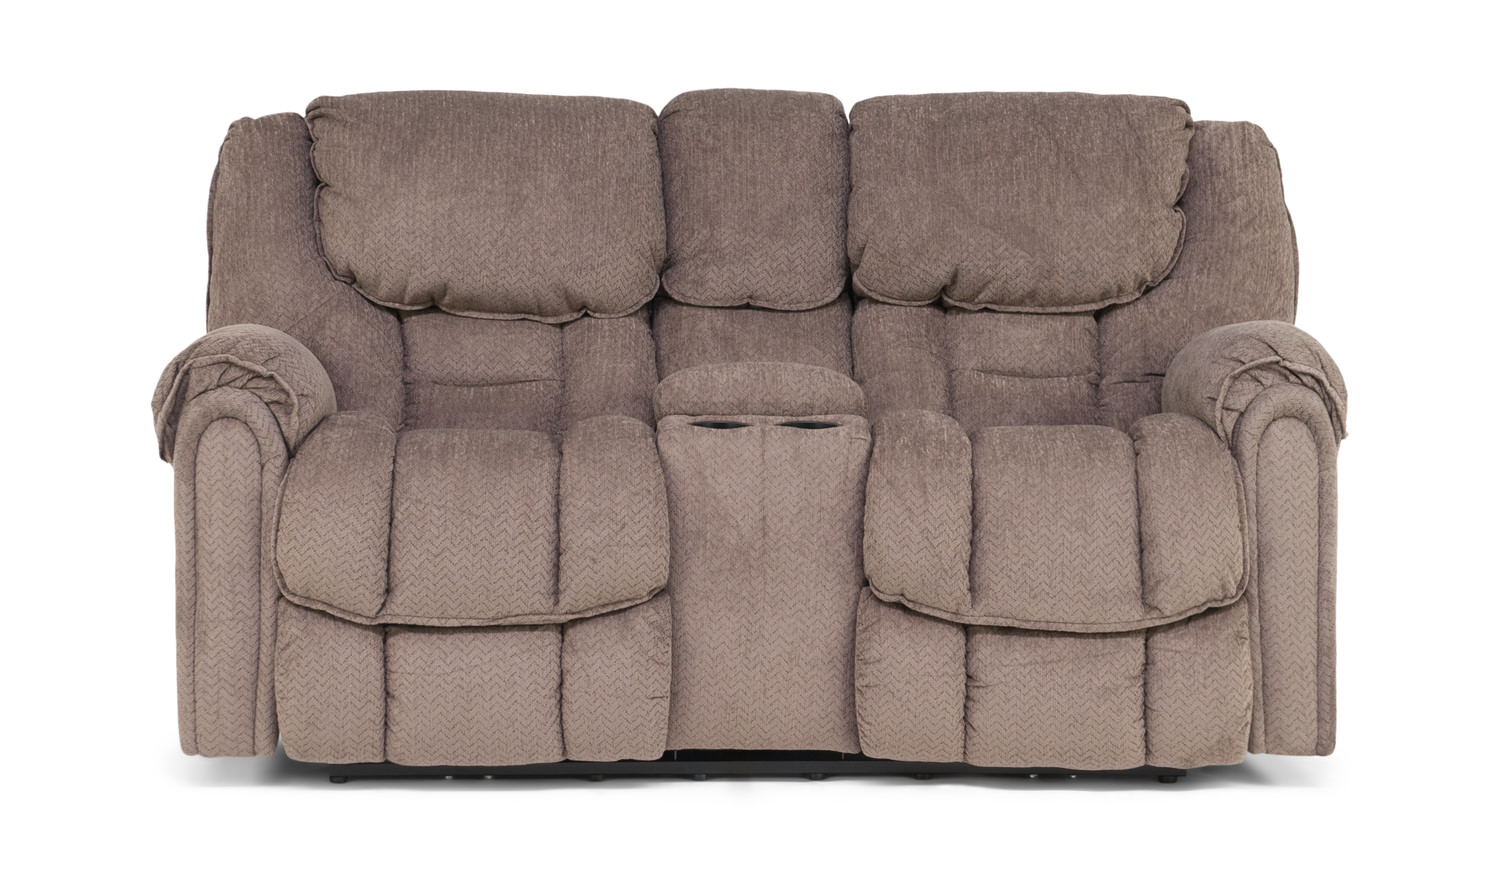 Pleasant Del Mar Power Reclining Loveseat With Console Gamerscity Chair Design For Home Gamerscityorg